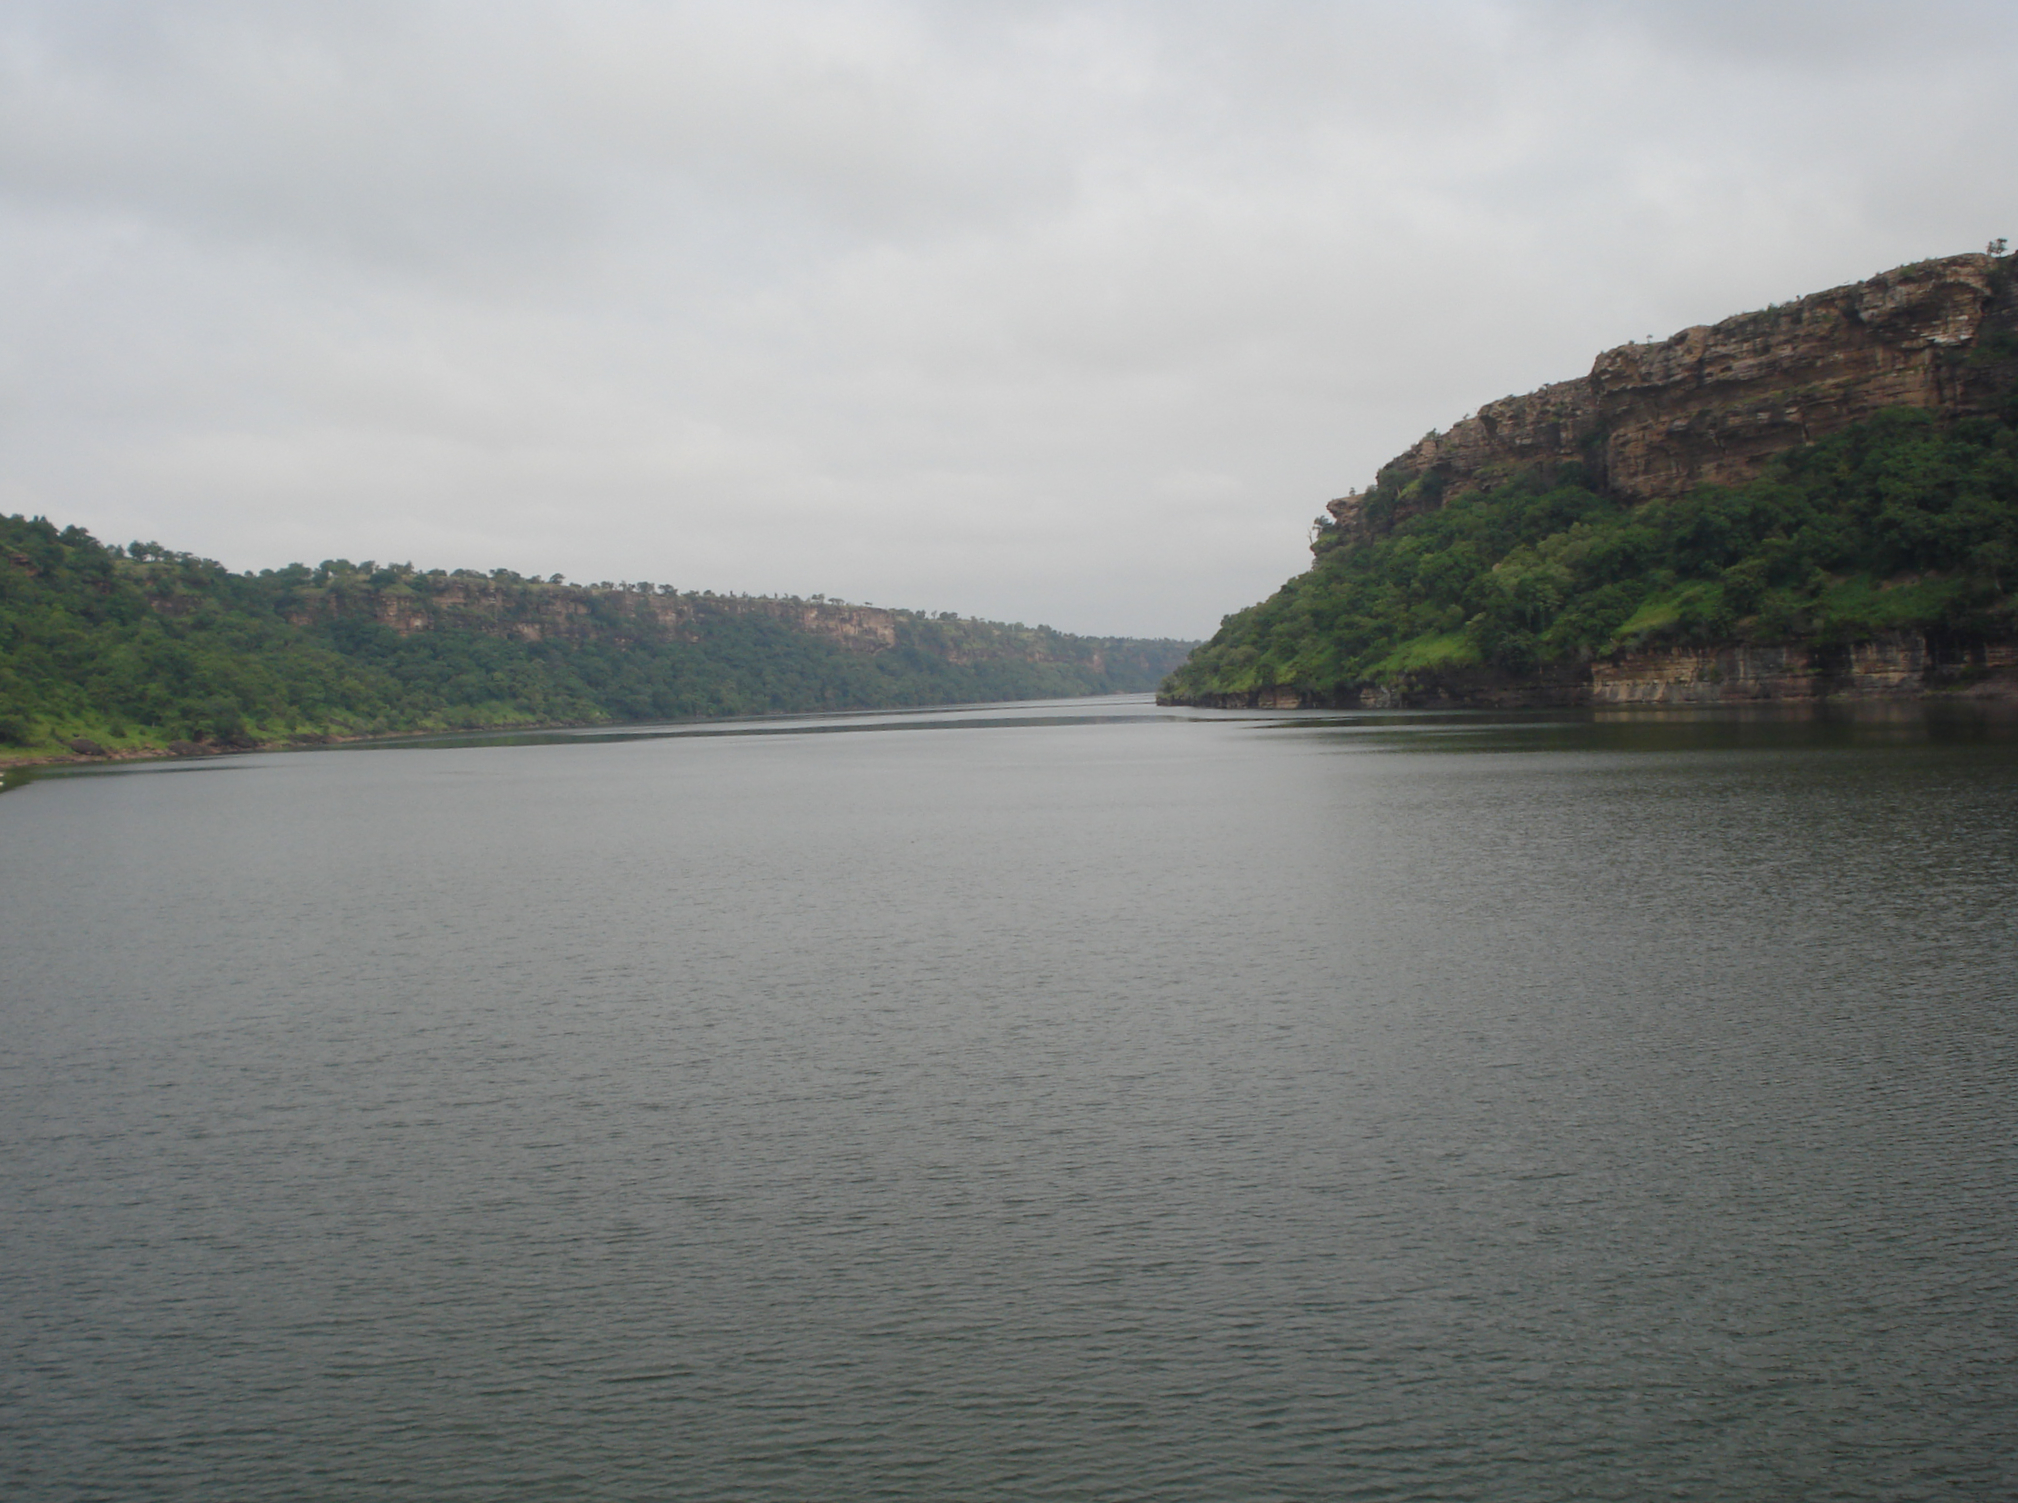 File:Gandhi Sagar Dam1.JPG - Wikipedia, the free encyclopedia